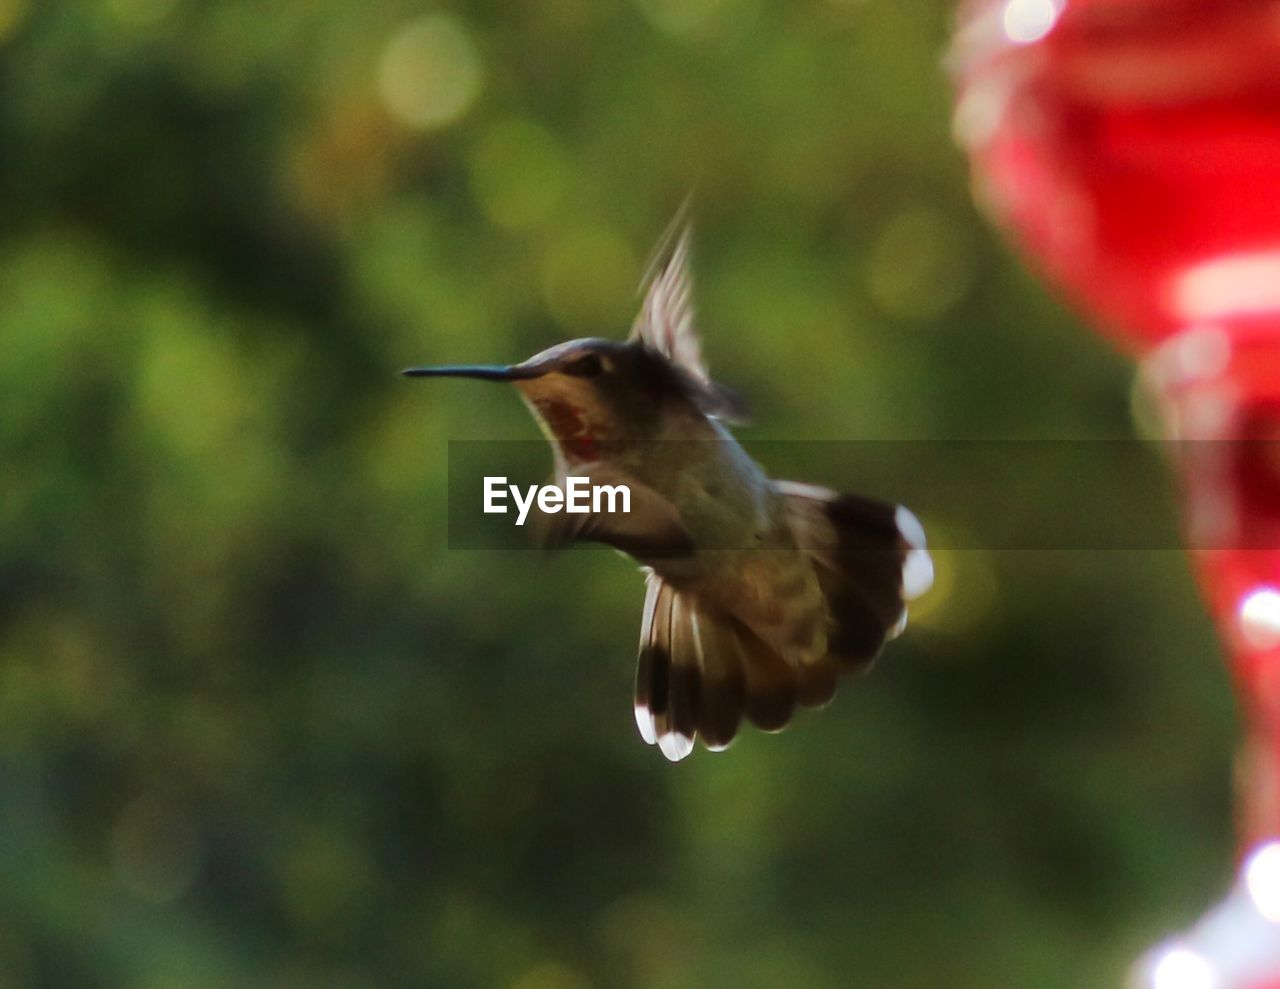 animal themes, animal wildlife, animals in the wild, flying, bird, vertebrate, animal, one animal, spread wings, blurred motion, motion, no people, hummingbird, mid-air, day, nature, focus on foreground, close-up, outdoors, beak, flapping